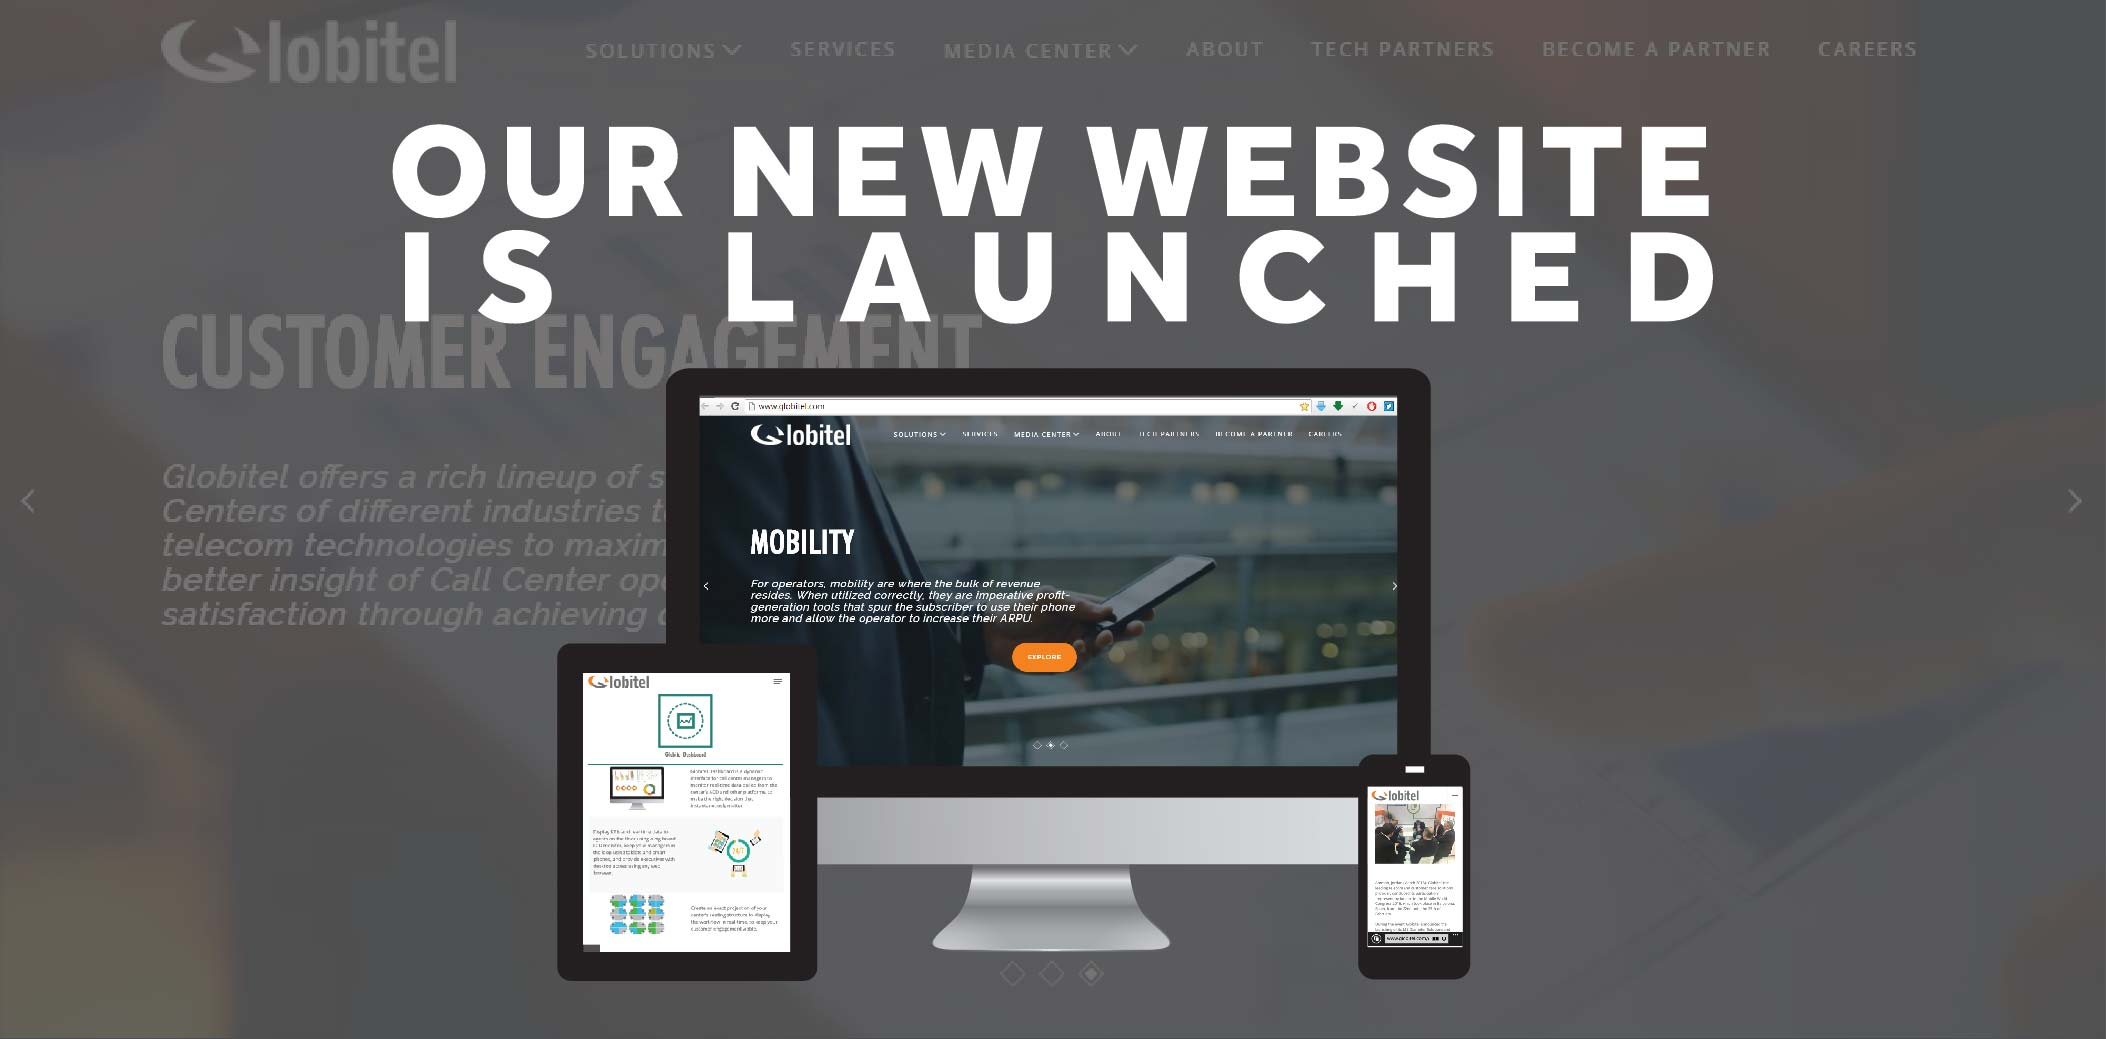 Globitel Launches its New Website